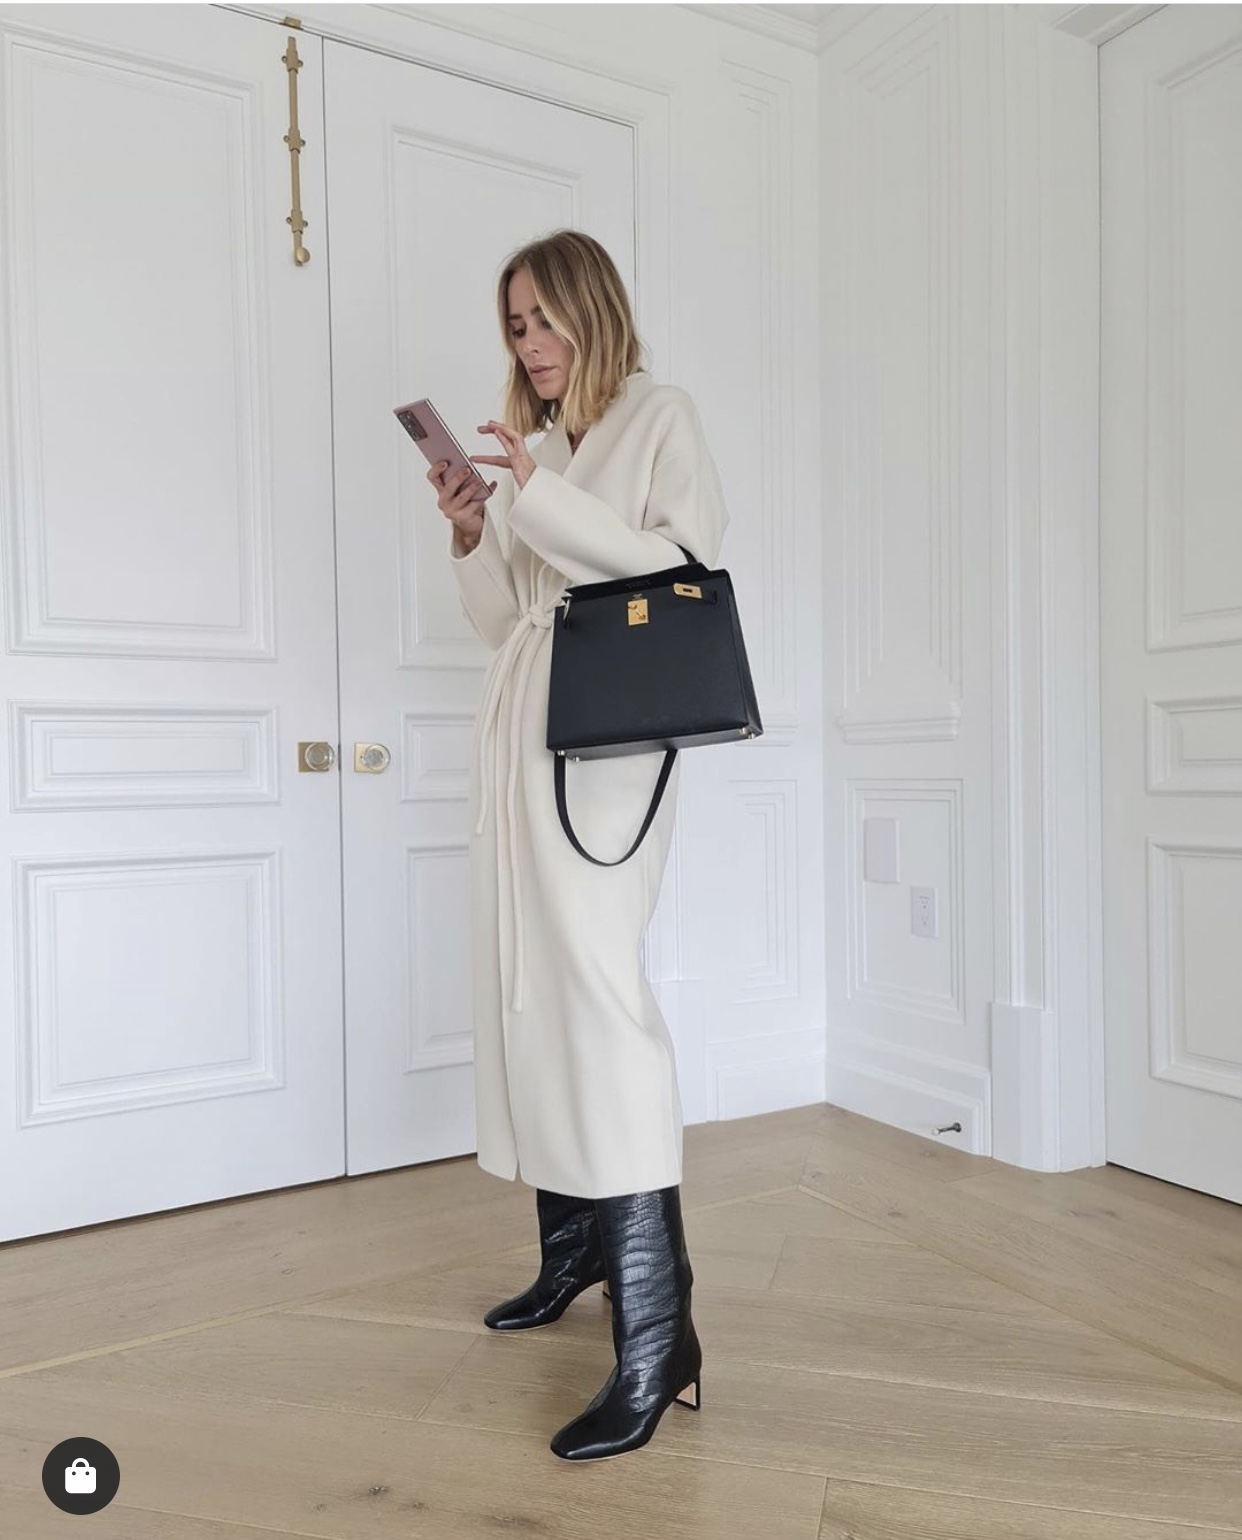 Style Inspiration | Mini Trend: The Hermès Kelly Bag